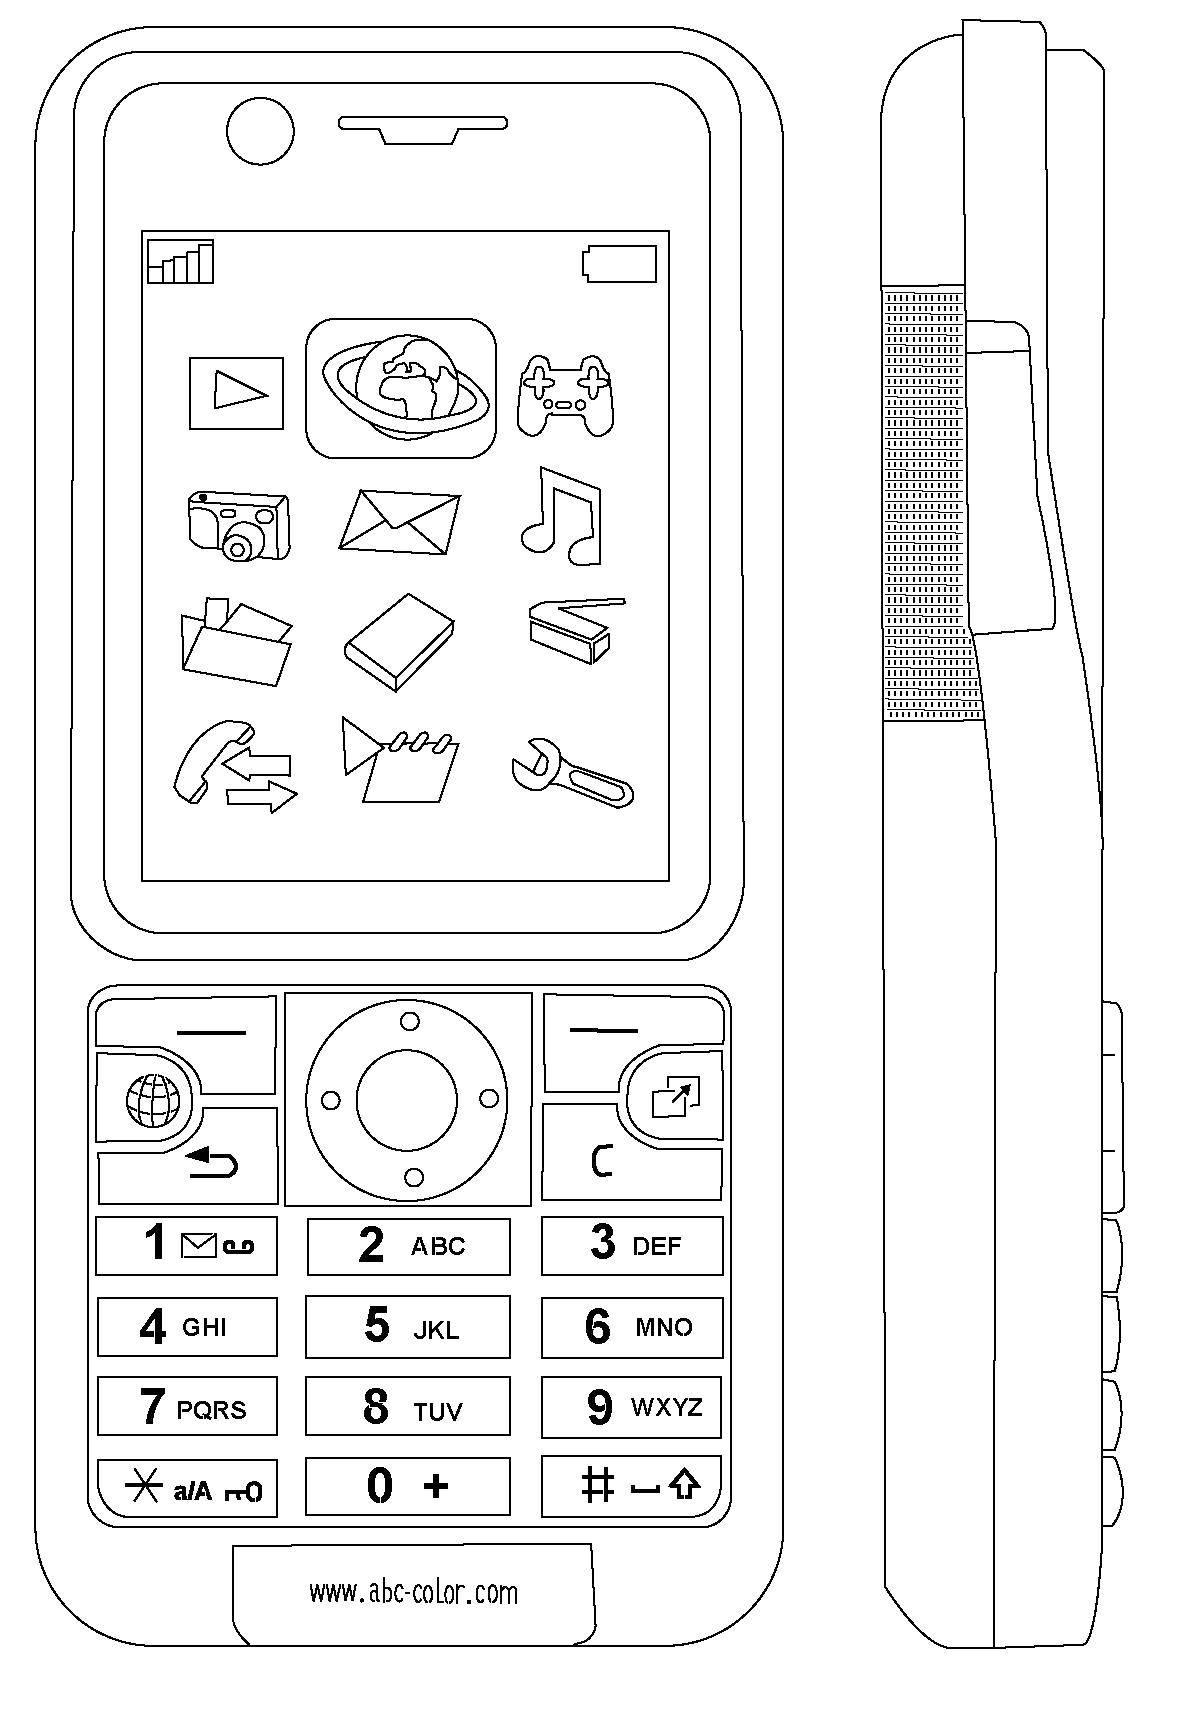 Coloring Menu on the cell phone Download the phone ,buttons, screen, menu,.  Print